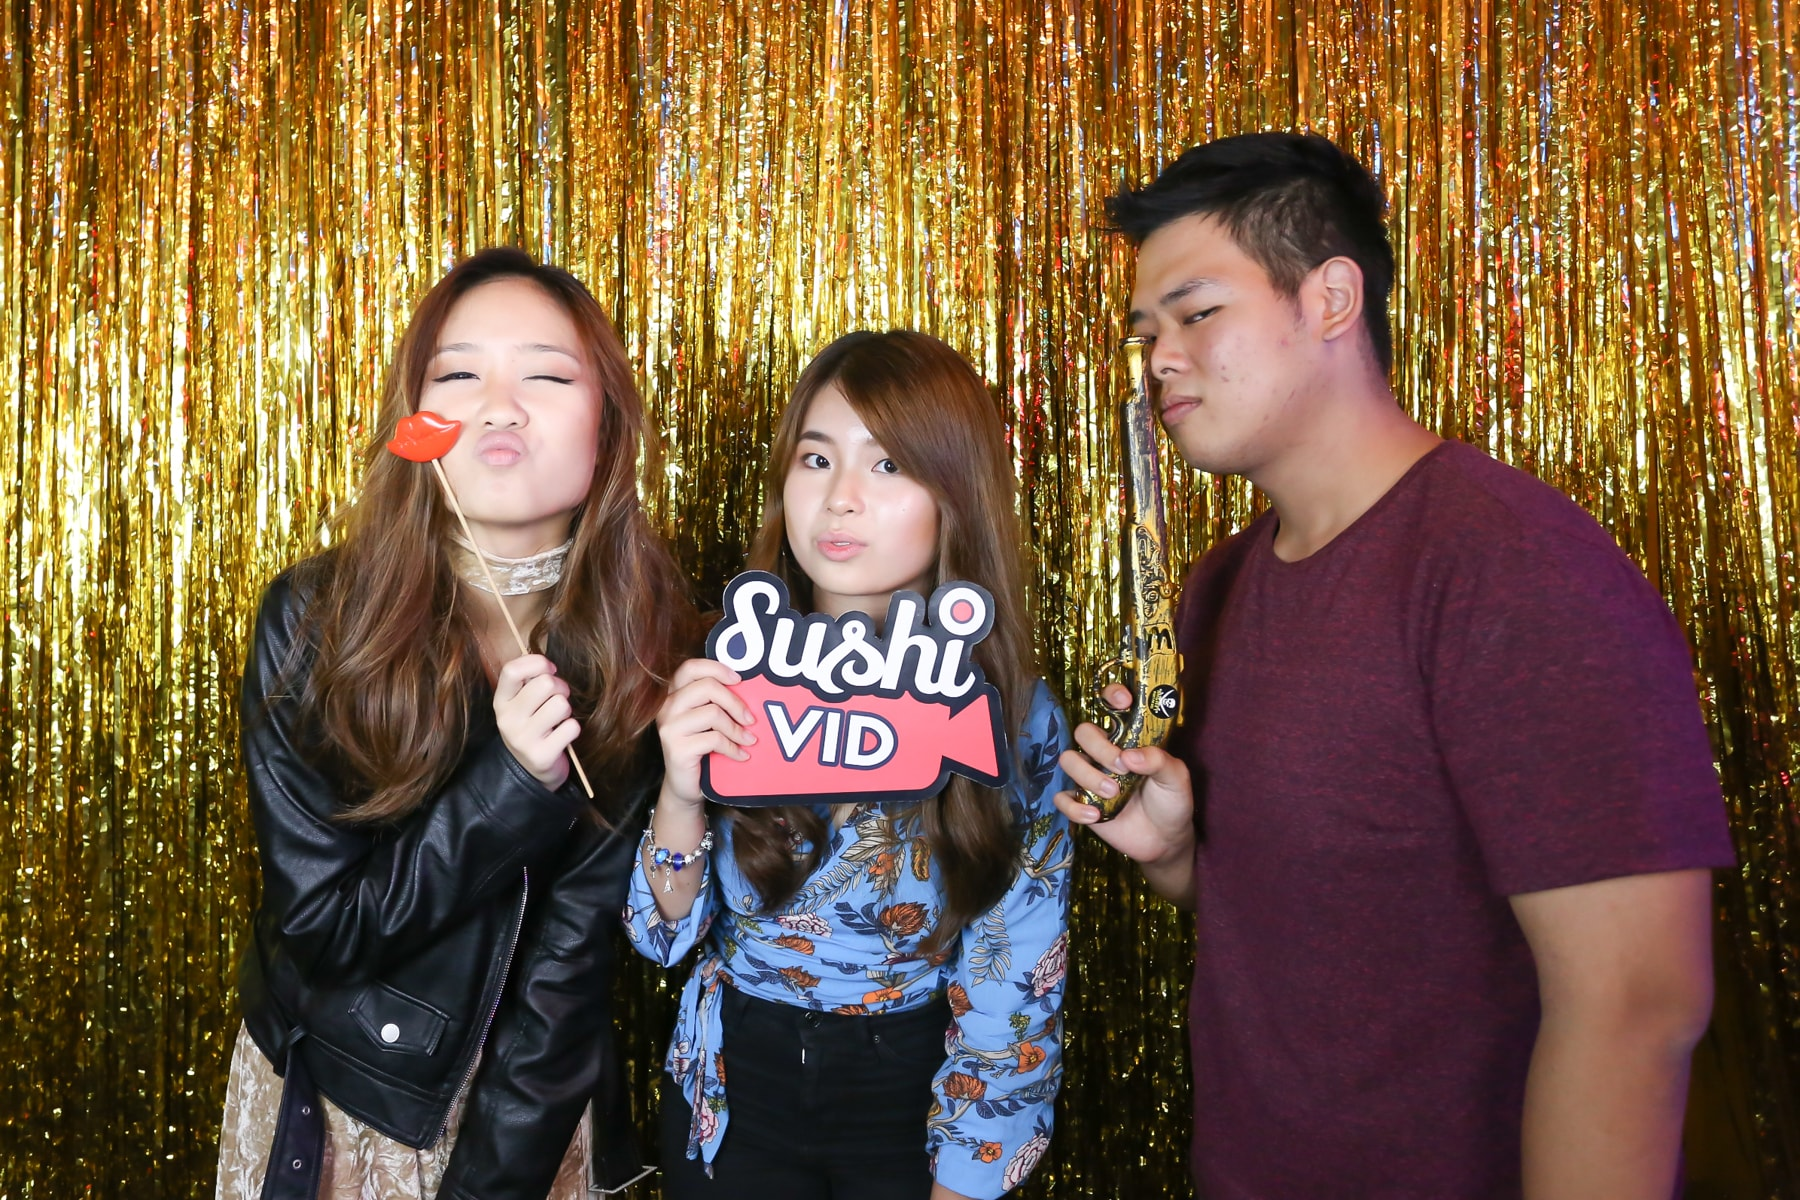 Sushivid+crunch+tagbooth+70